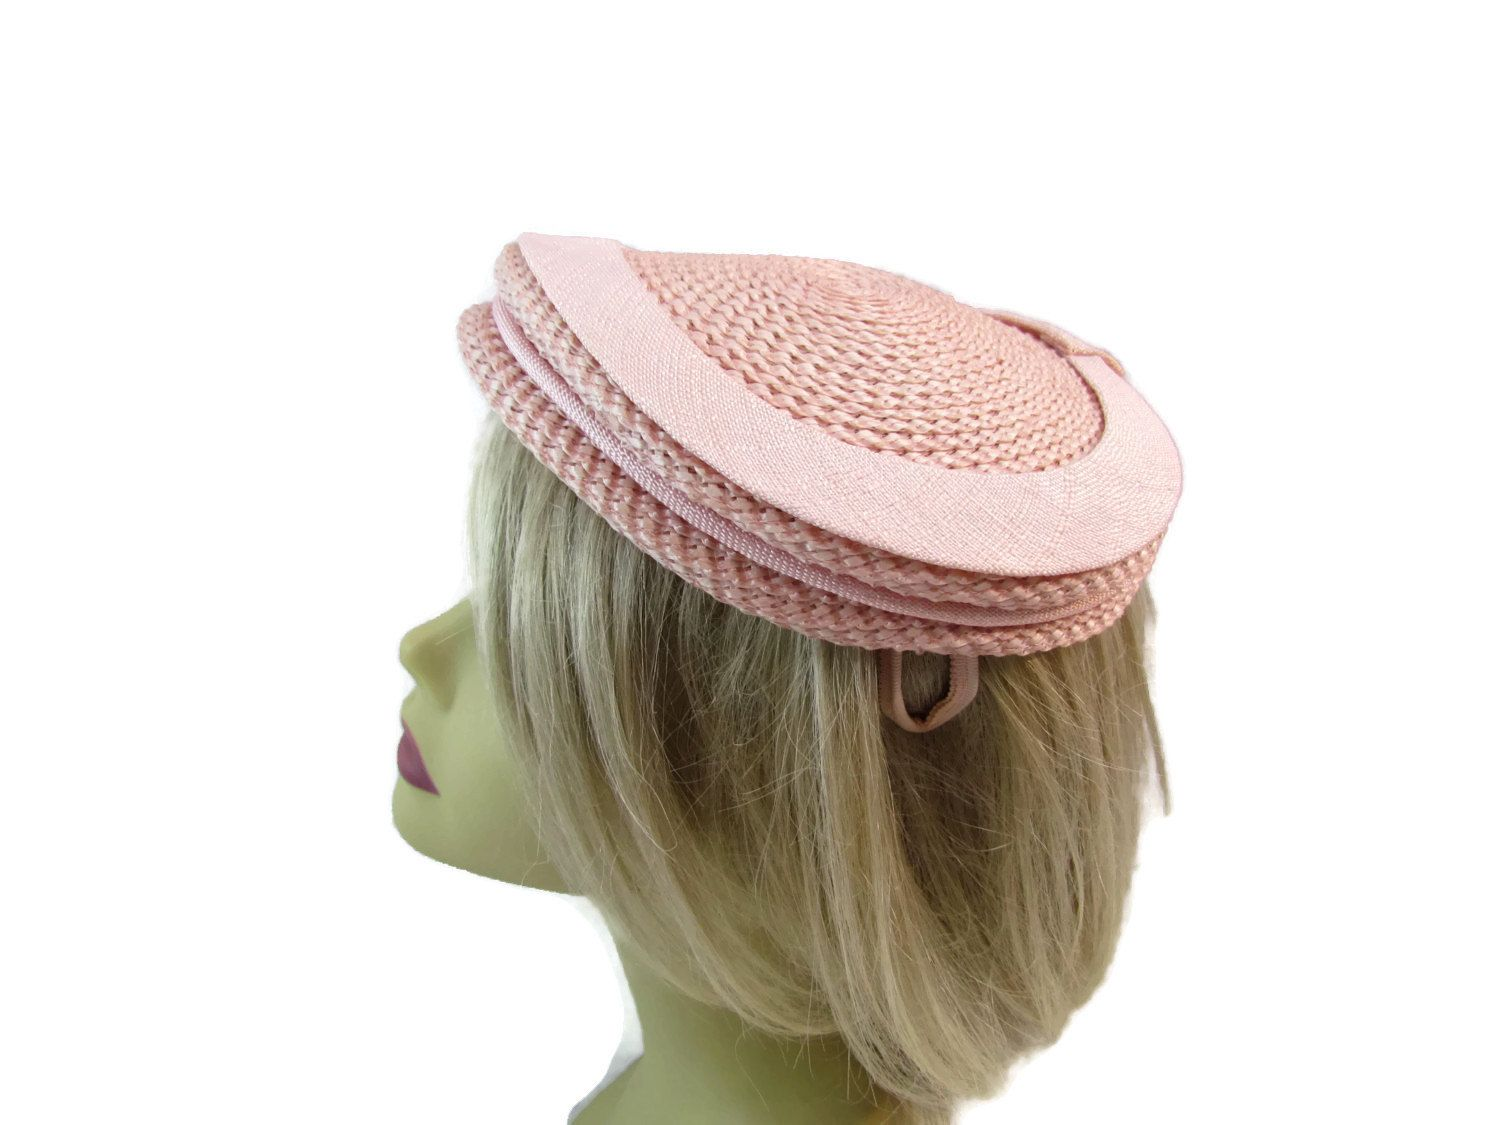 Pink Pillbox Hat Vintage Fascinator Hat Womens Hats Fascinators Hats Pillbox Hats Kentucky Derby Hat 1960s Mod Mad Men Jane Morgan Hats by WhyWeLoveThePast on Etsy